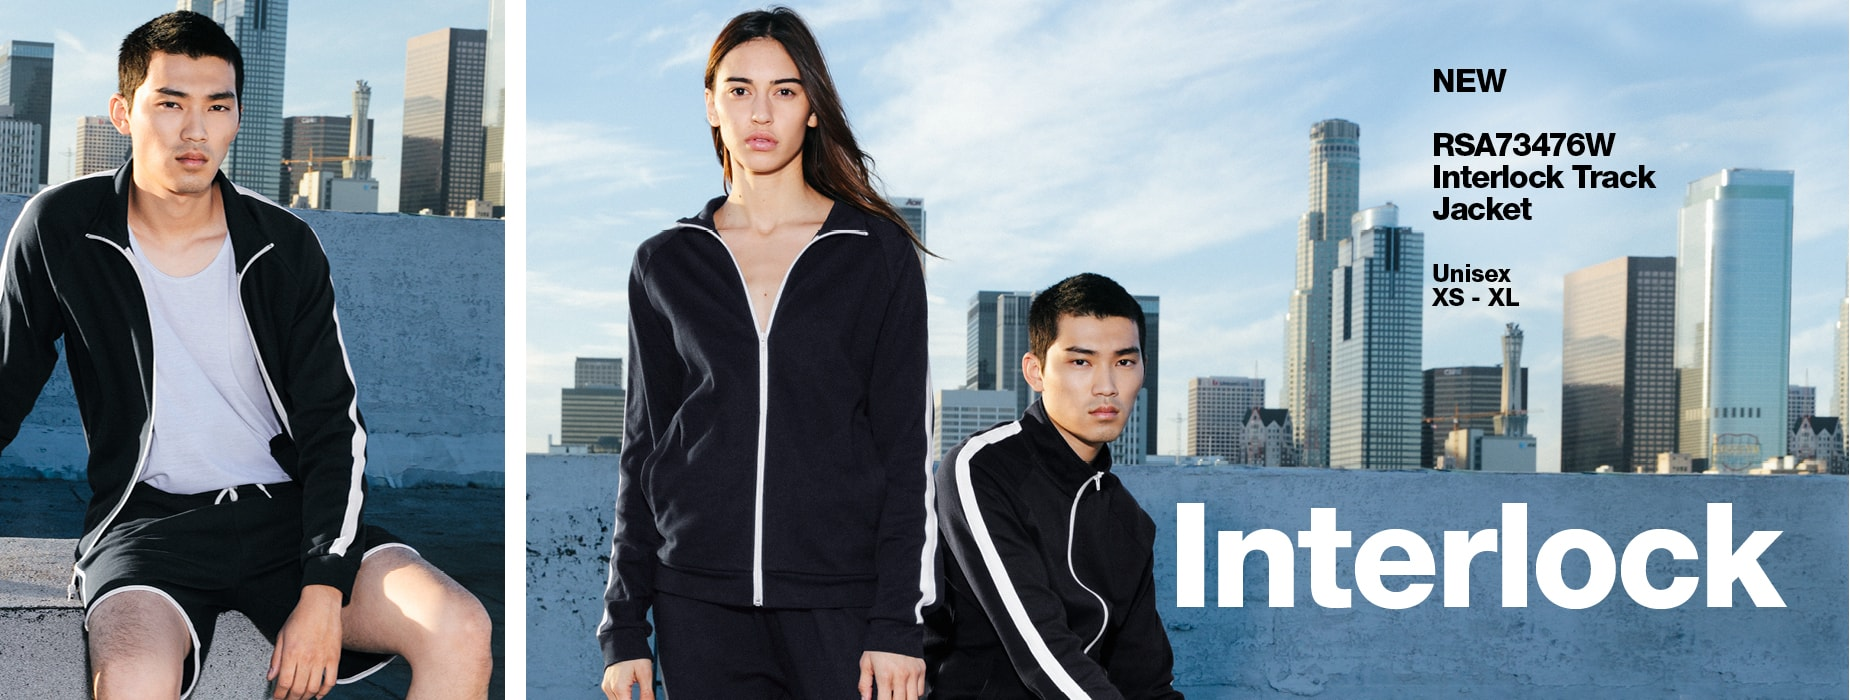 RSA73476W Interlock Track Jacket